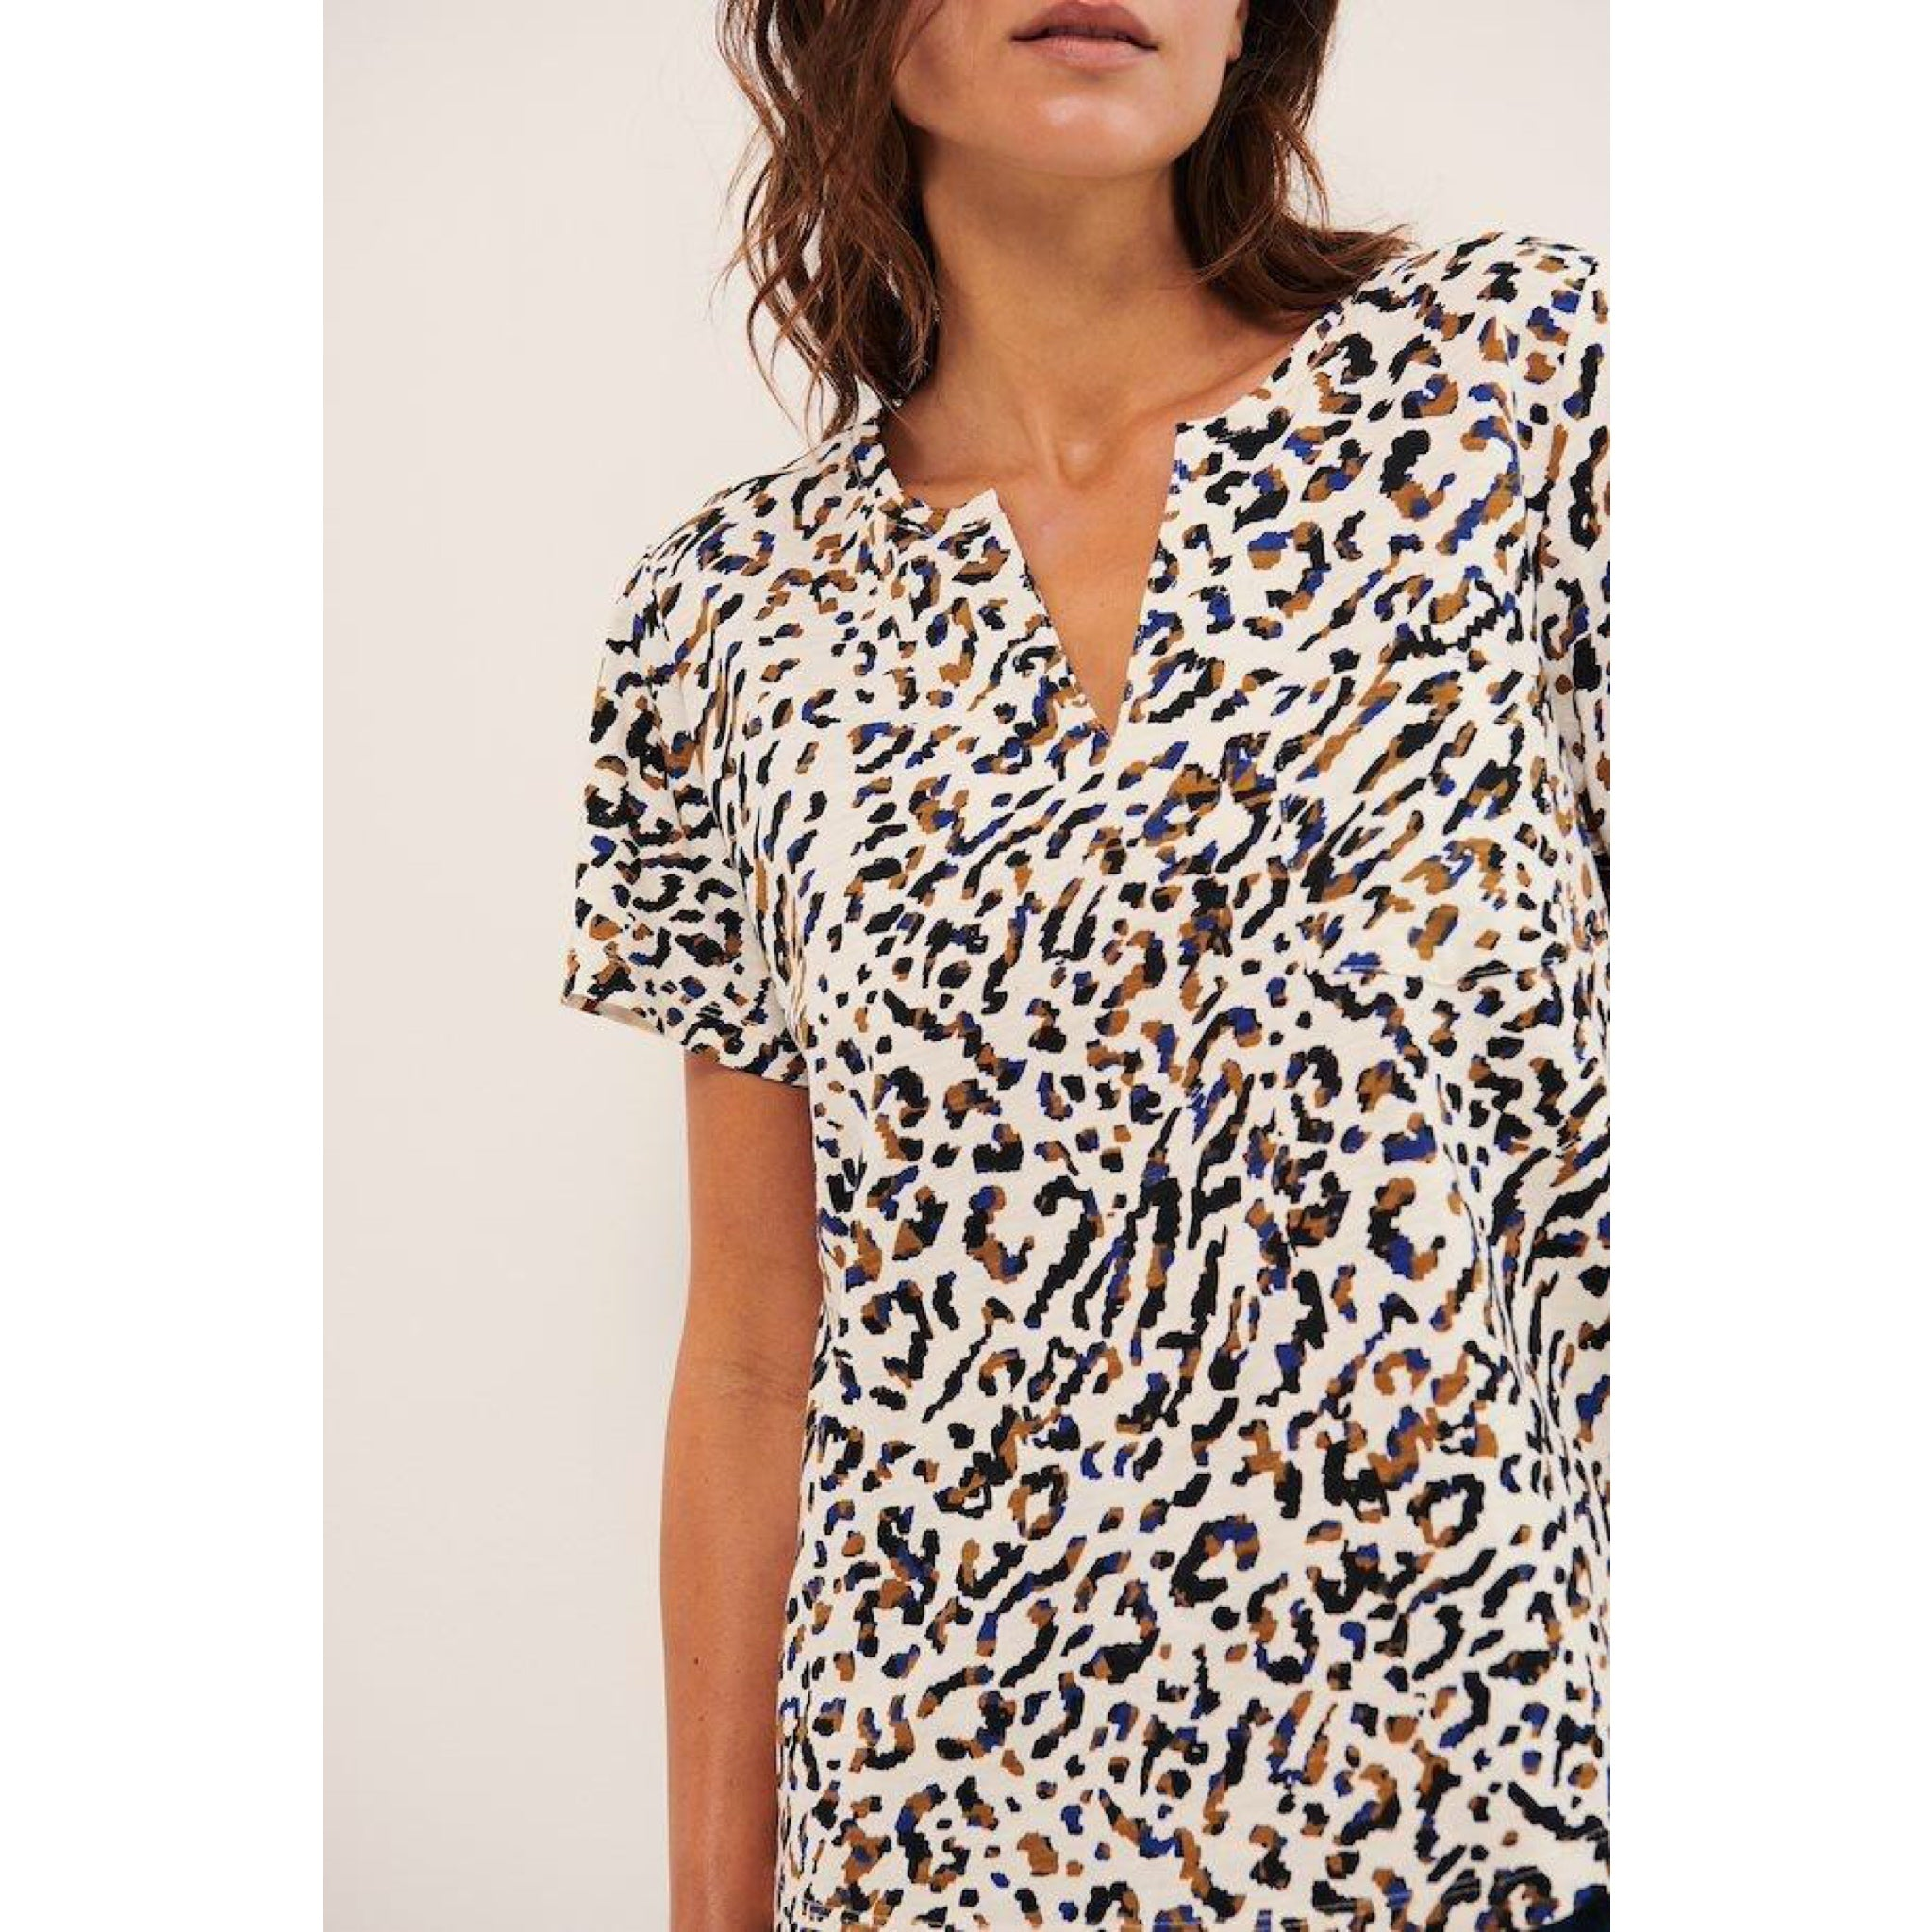 Gesina T-Shirt  Abstract Leo Print, Blue